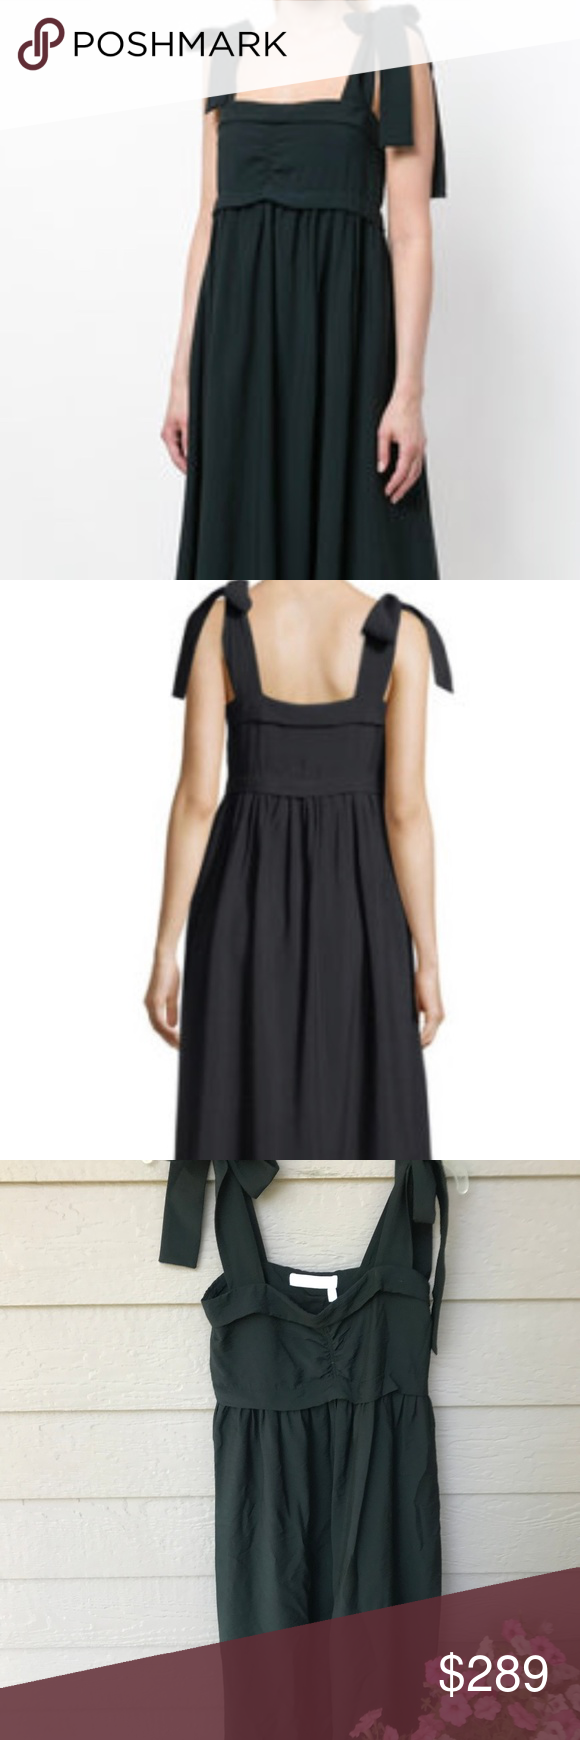 d0df3a1be5 See by Chloe Sleeveless Tie-Shoulder DRESS SZ 34 $425 See by Chloe See by